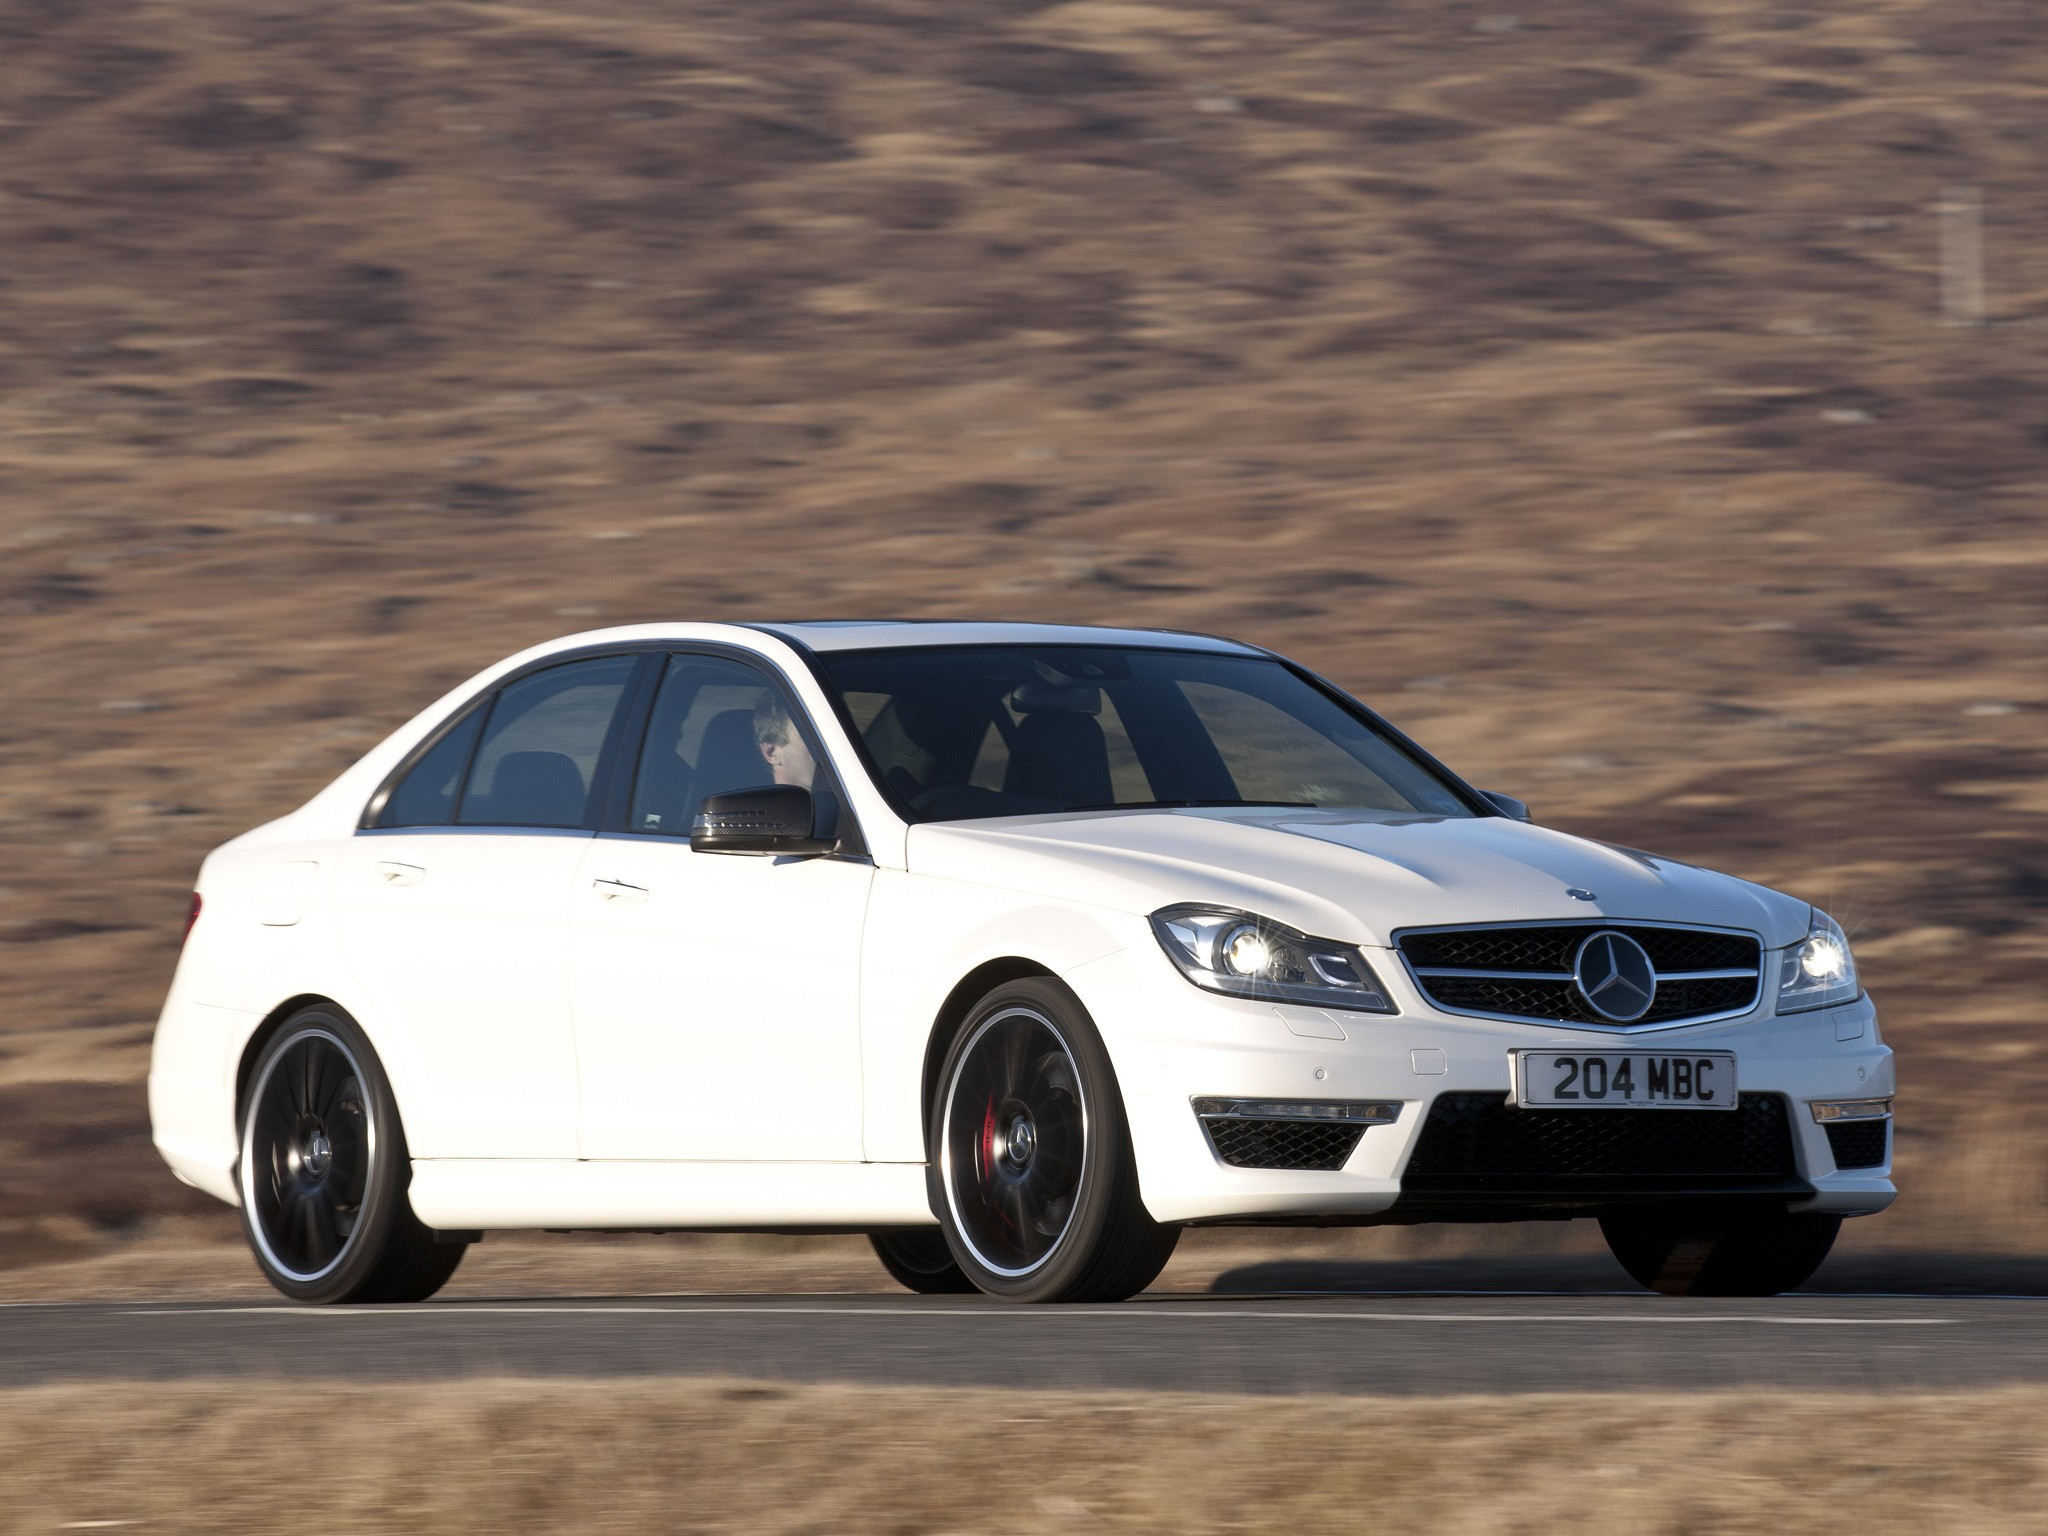 mercedes benz c 63 amg w204 specs 2011 2012 2013 2014 autoevolution. Black Bedroom Furniture Sets. Home Design Ideas